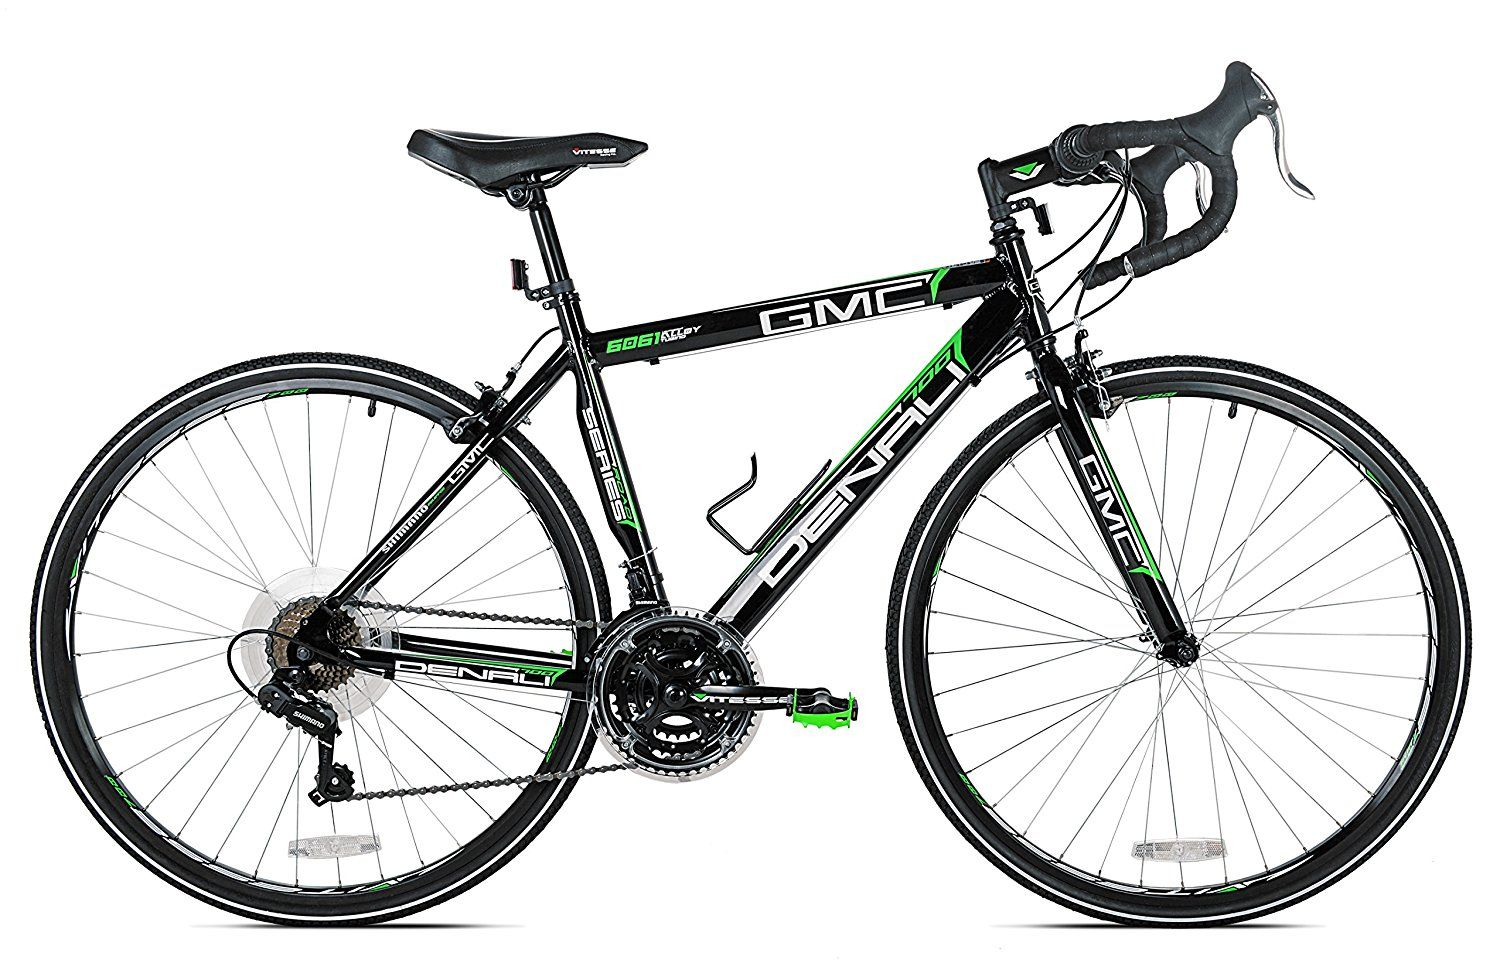 Amazon Com Gmc Denali Road Bike 700c Black Green Large 63 5cm Frame Road Bicycles Http Amzn To 2tevl9c Best Road Bike Bike Reviews Gmc Denali